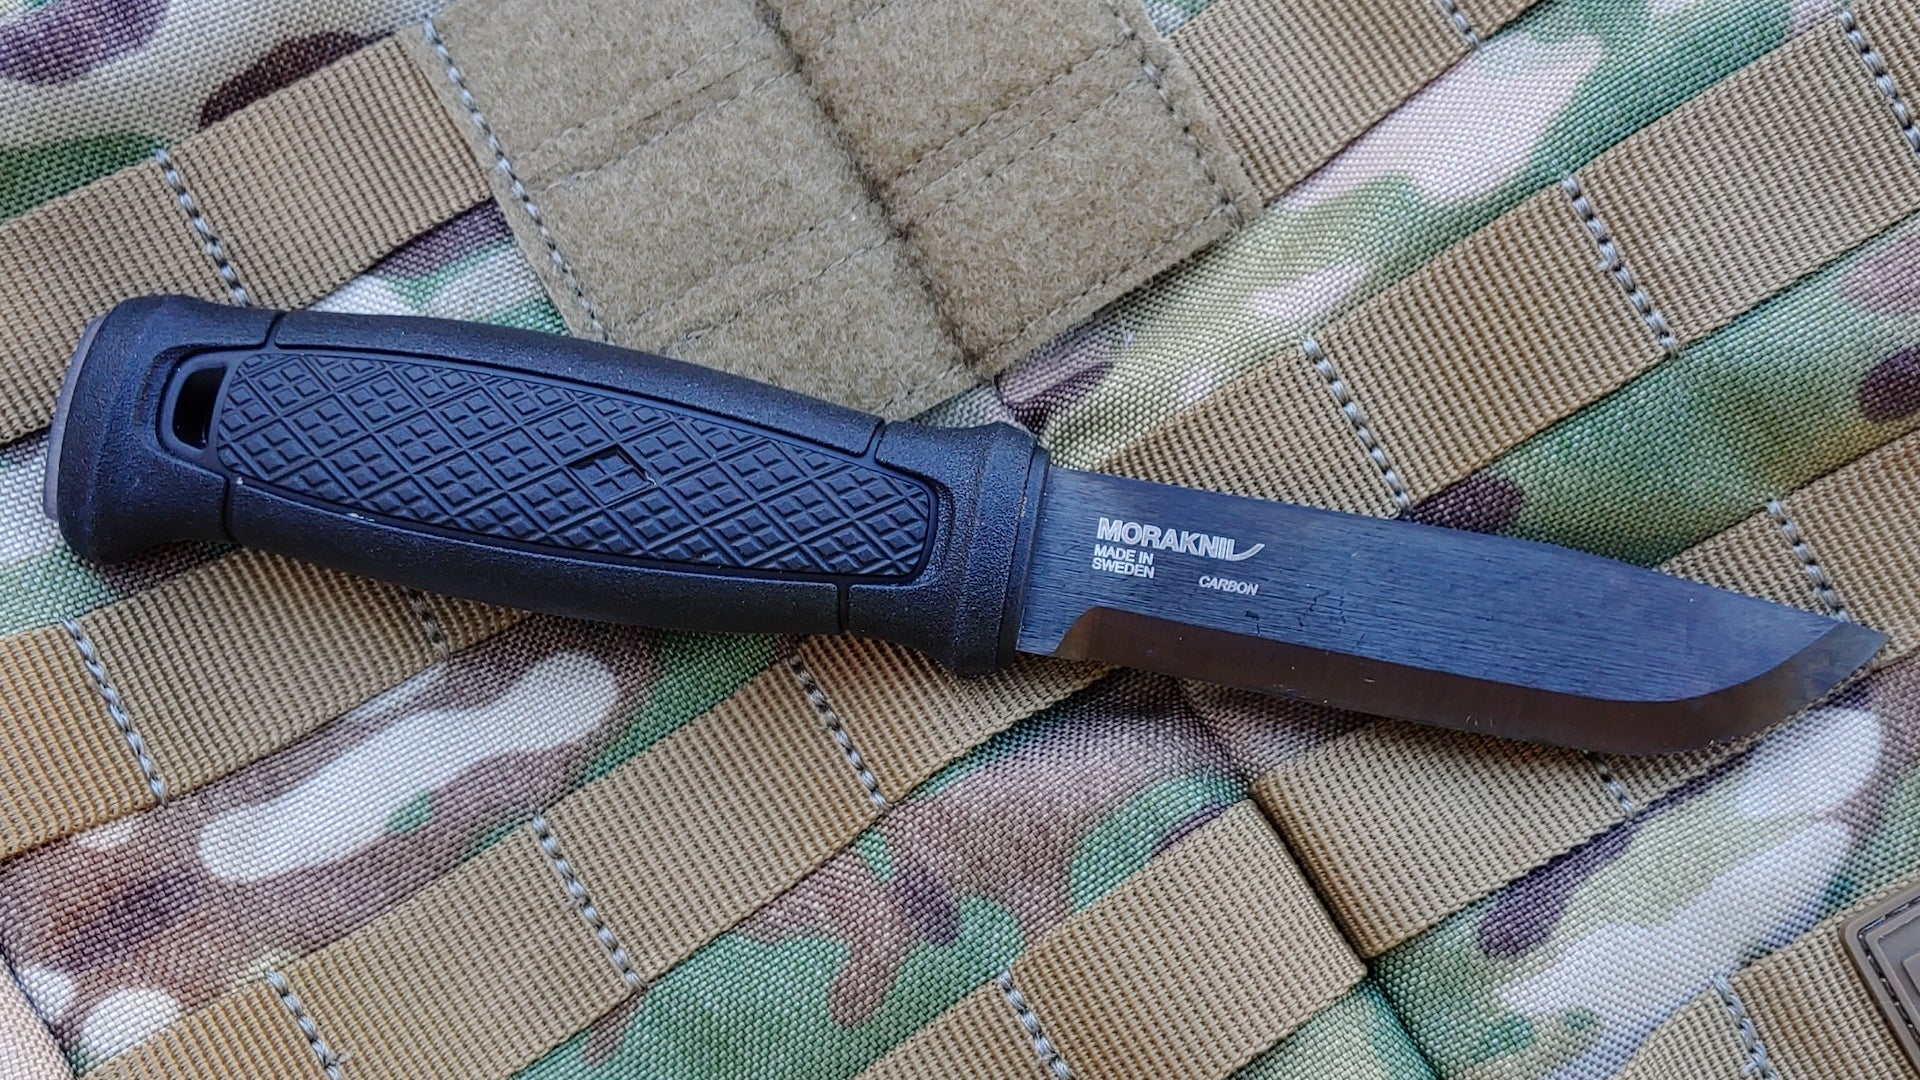 Review: Staying sharp with the Morakniv Garberg